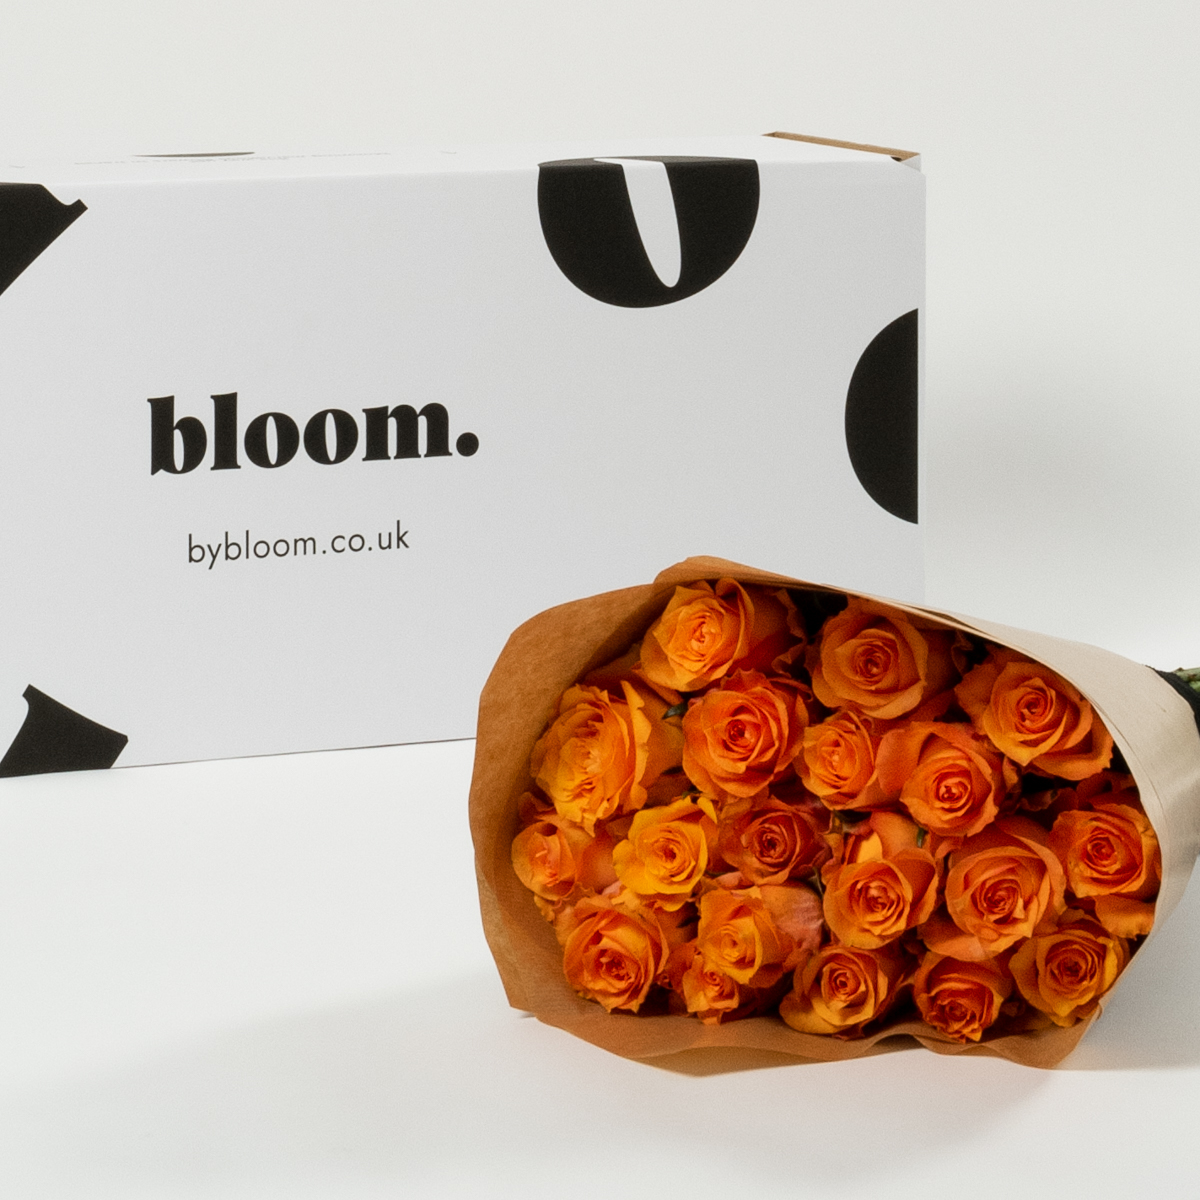 Bloom Flower Delivery | Tangerine Orange Rose